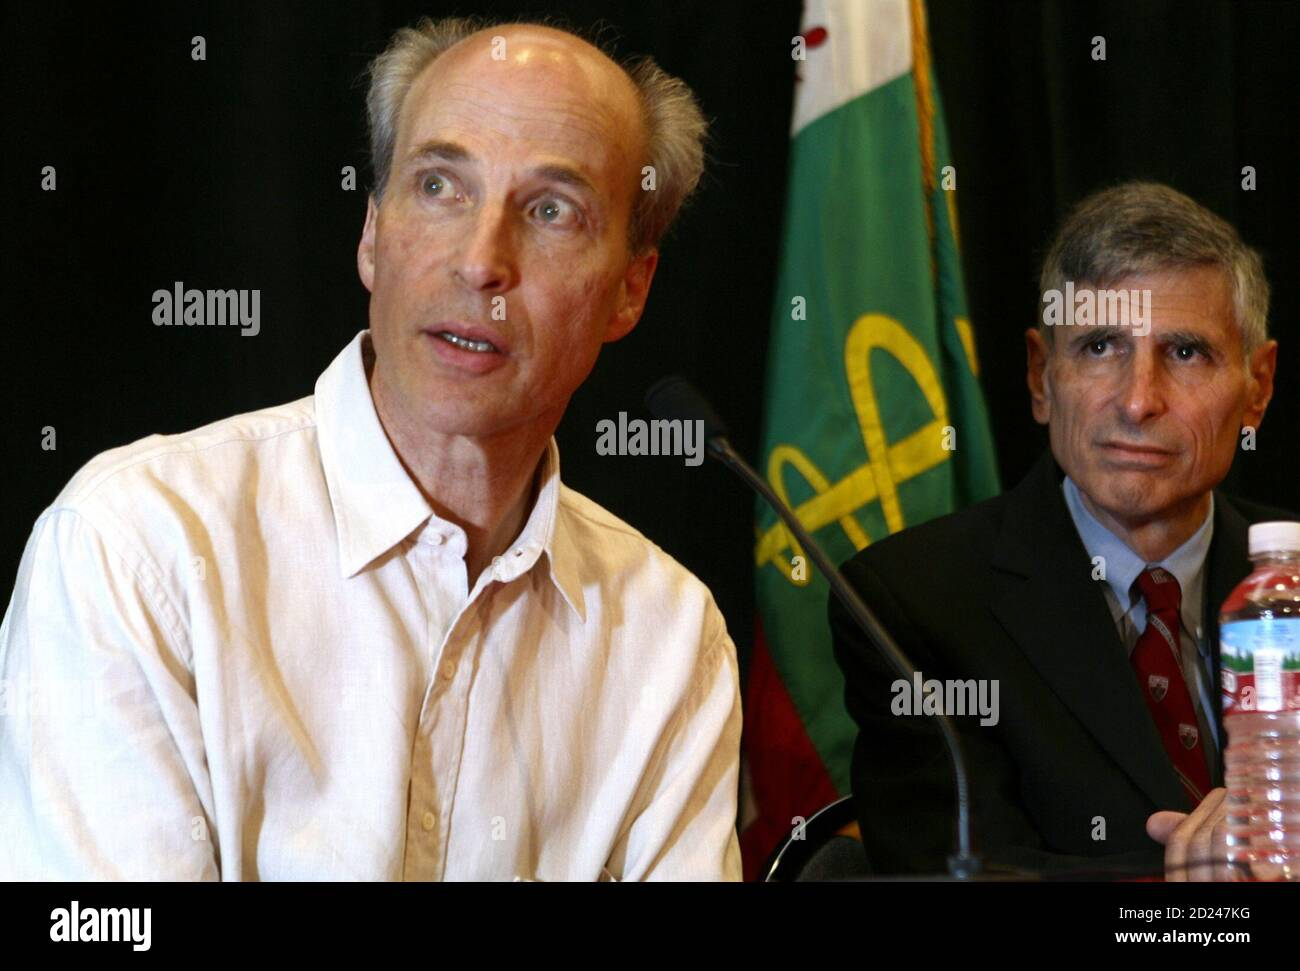 Stanford University professor Roger Kornberg (L) sits next to the Dean of the Medical School Philip Pizzo after his 2006 Nobel chemistry prize win for work in the field of gene expression, during a news conference at Stanford, California October 4, 2006. Kornberg won the prize on Wednesday for showing how genes are copied, a process essential to how cells develop and to life itself. Kornberg's prize came 47 years after he watched his father Arthur accept the medicine Nobel in Stockholm for gene work. It also crowned a week of success for U.S. scientists, who have swept all the 2006 Nobel scien Stock Photo